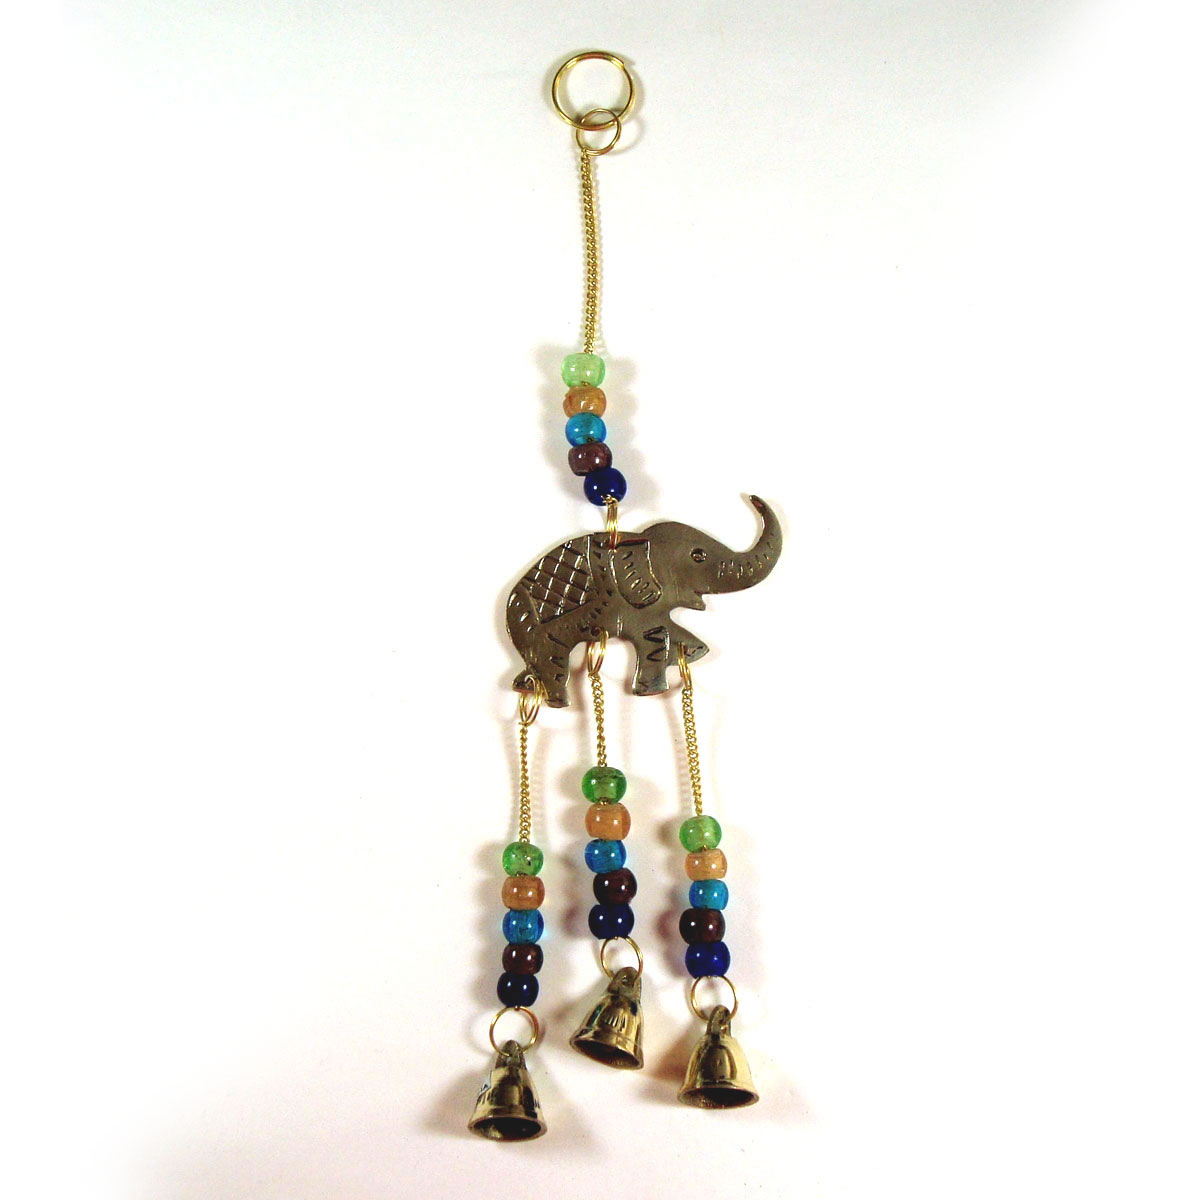 Brass Wind Chime with bells - ELEPHANT